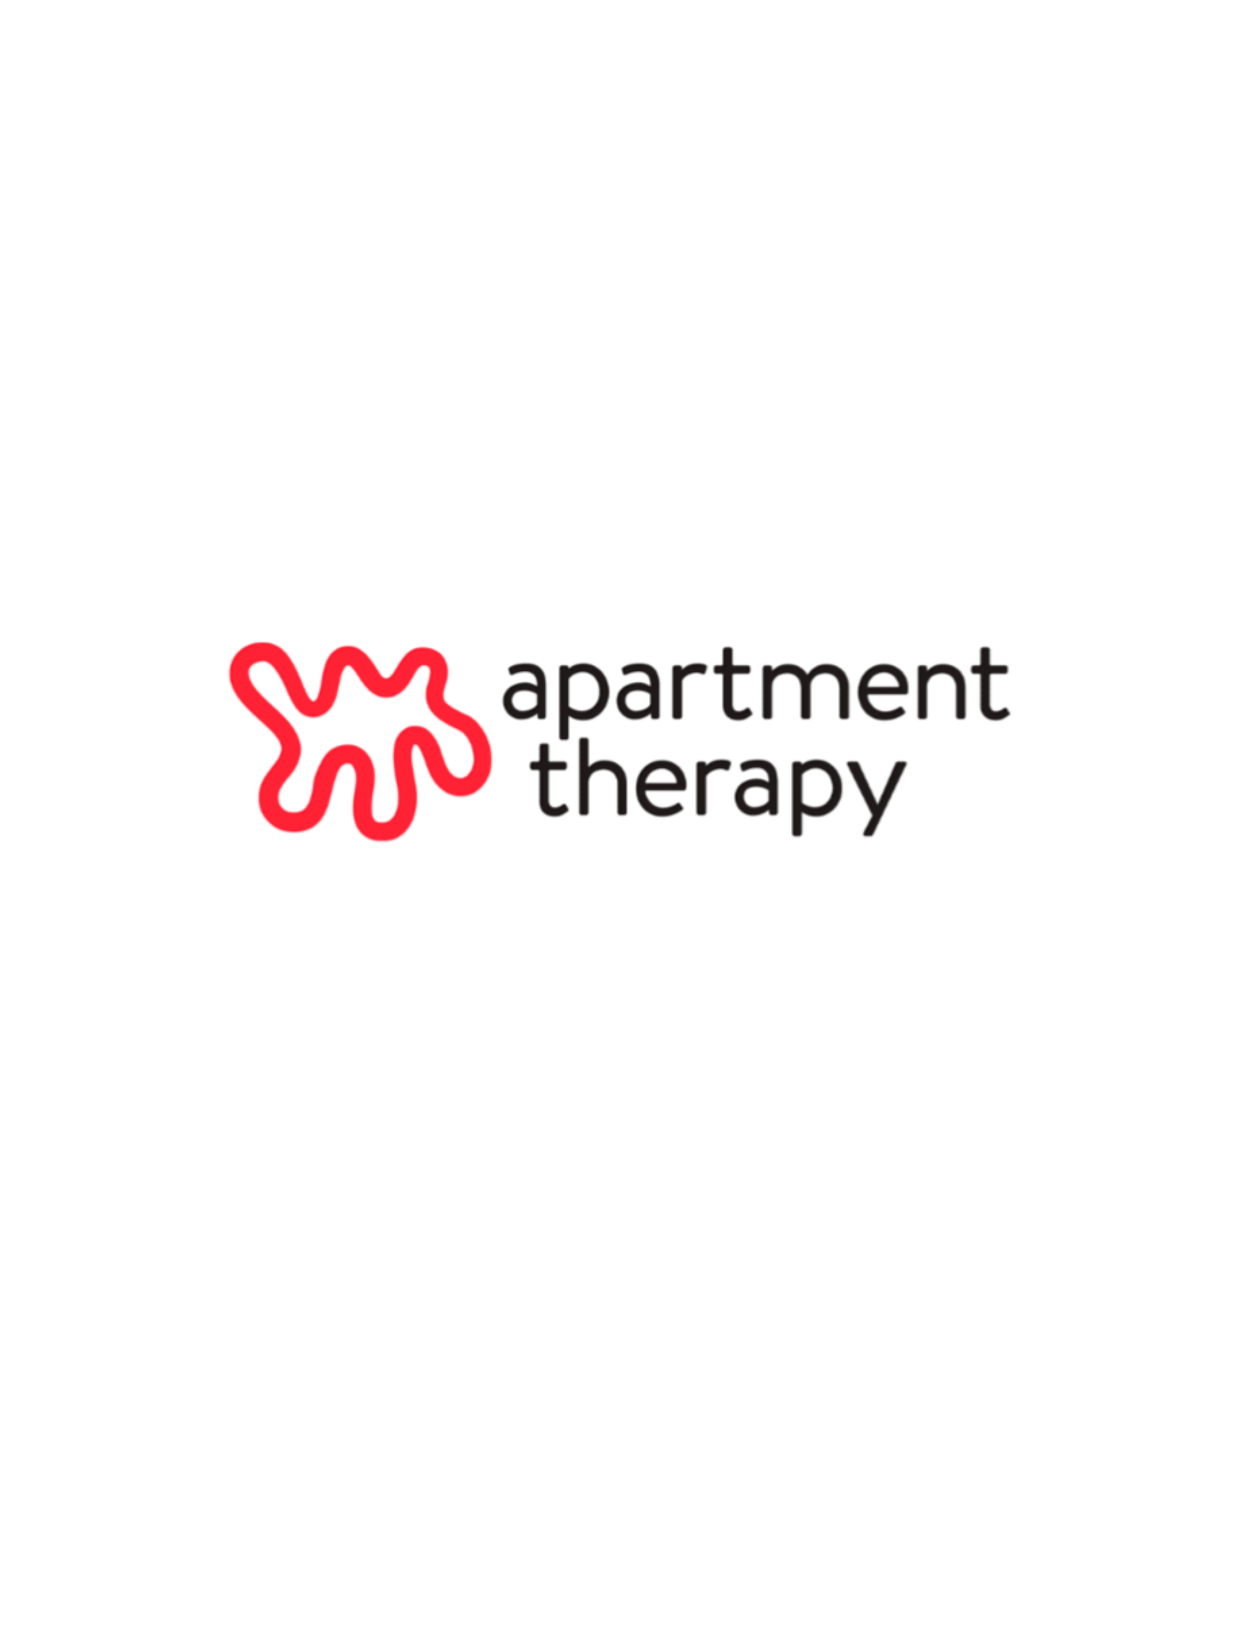 apartment-therapy-logo-1-1.png